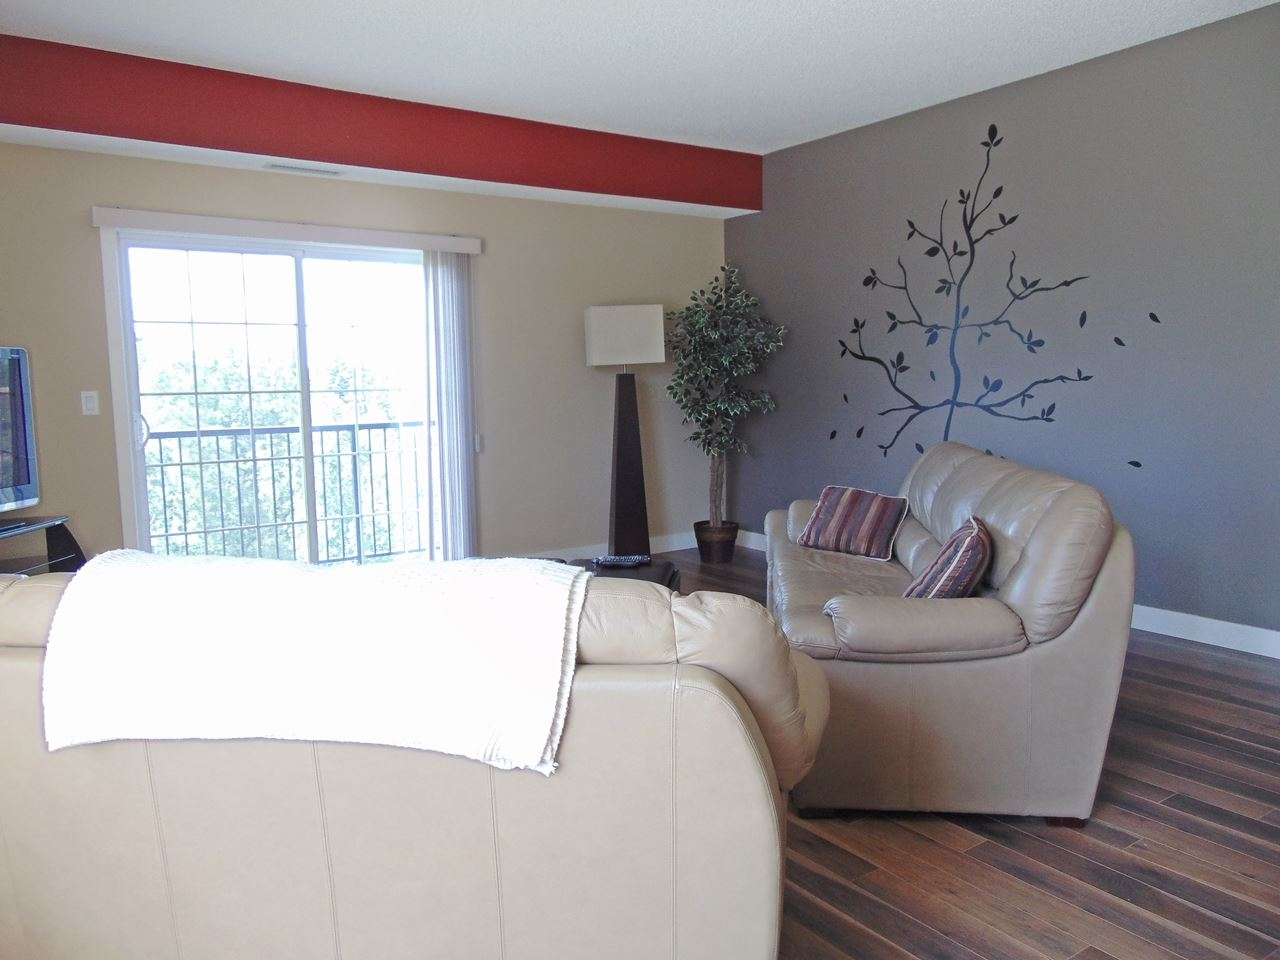 Photo 15: 203 4922 52 Street: Gibbons Condo for sale : MLS® # E4071334